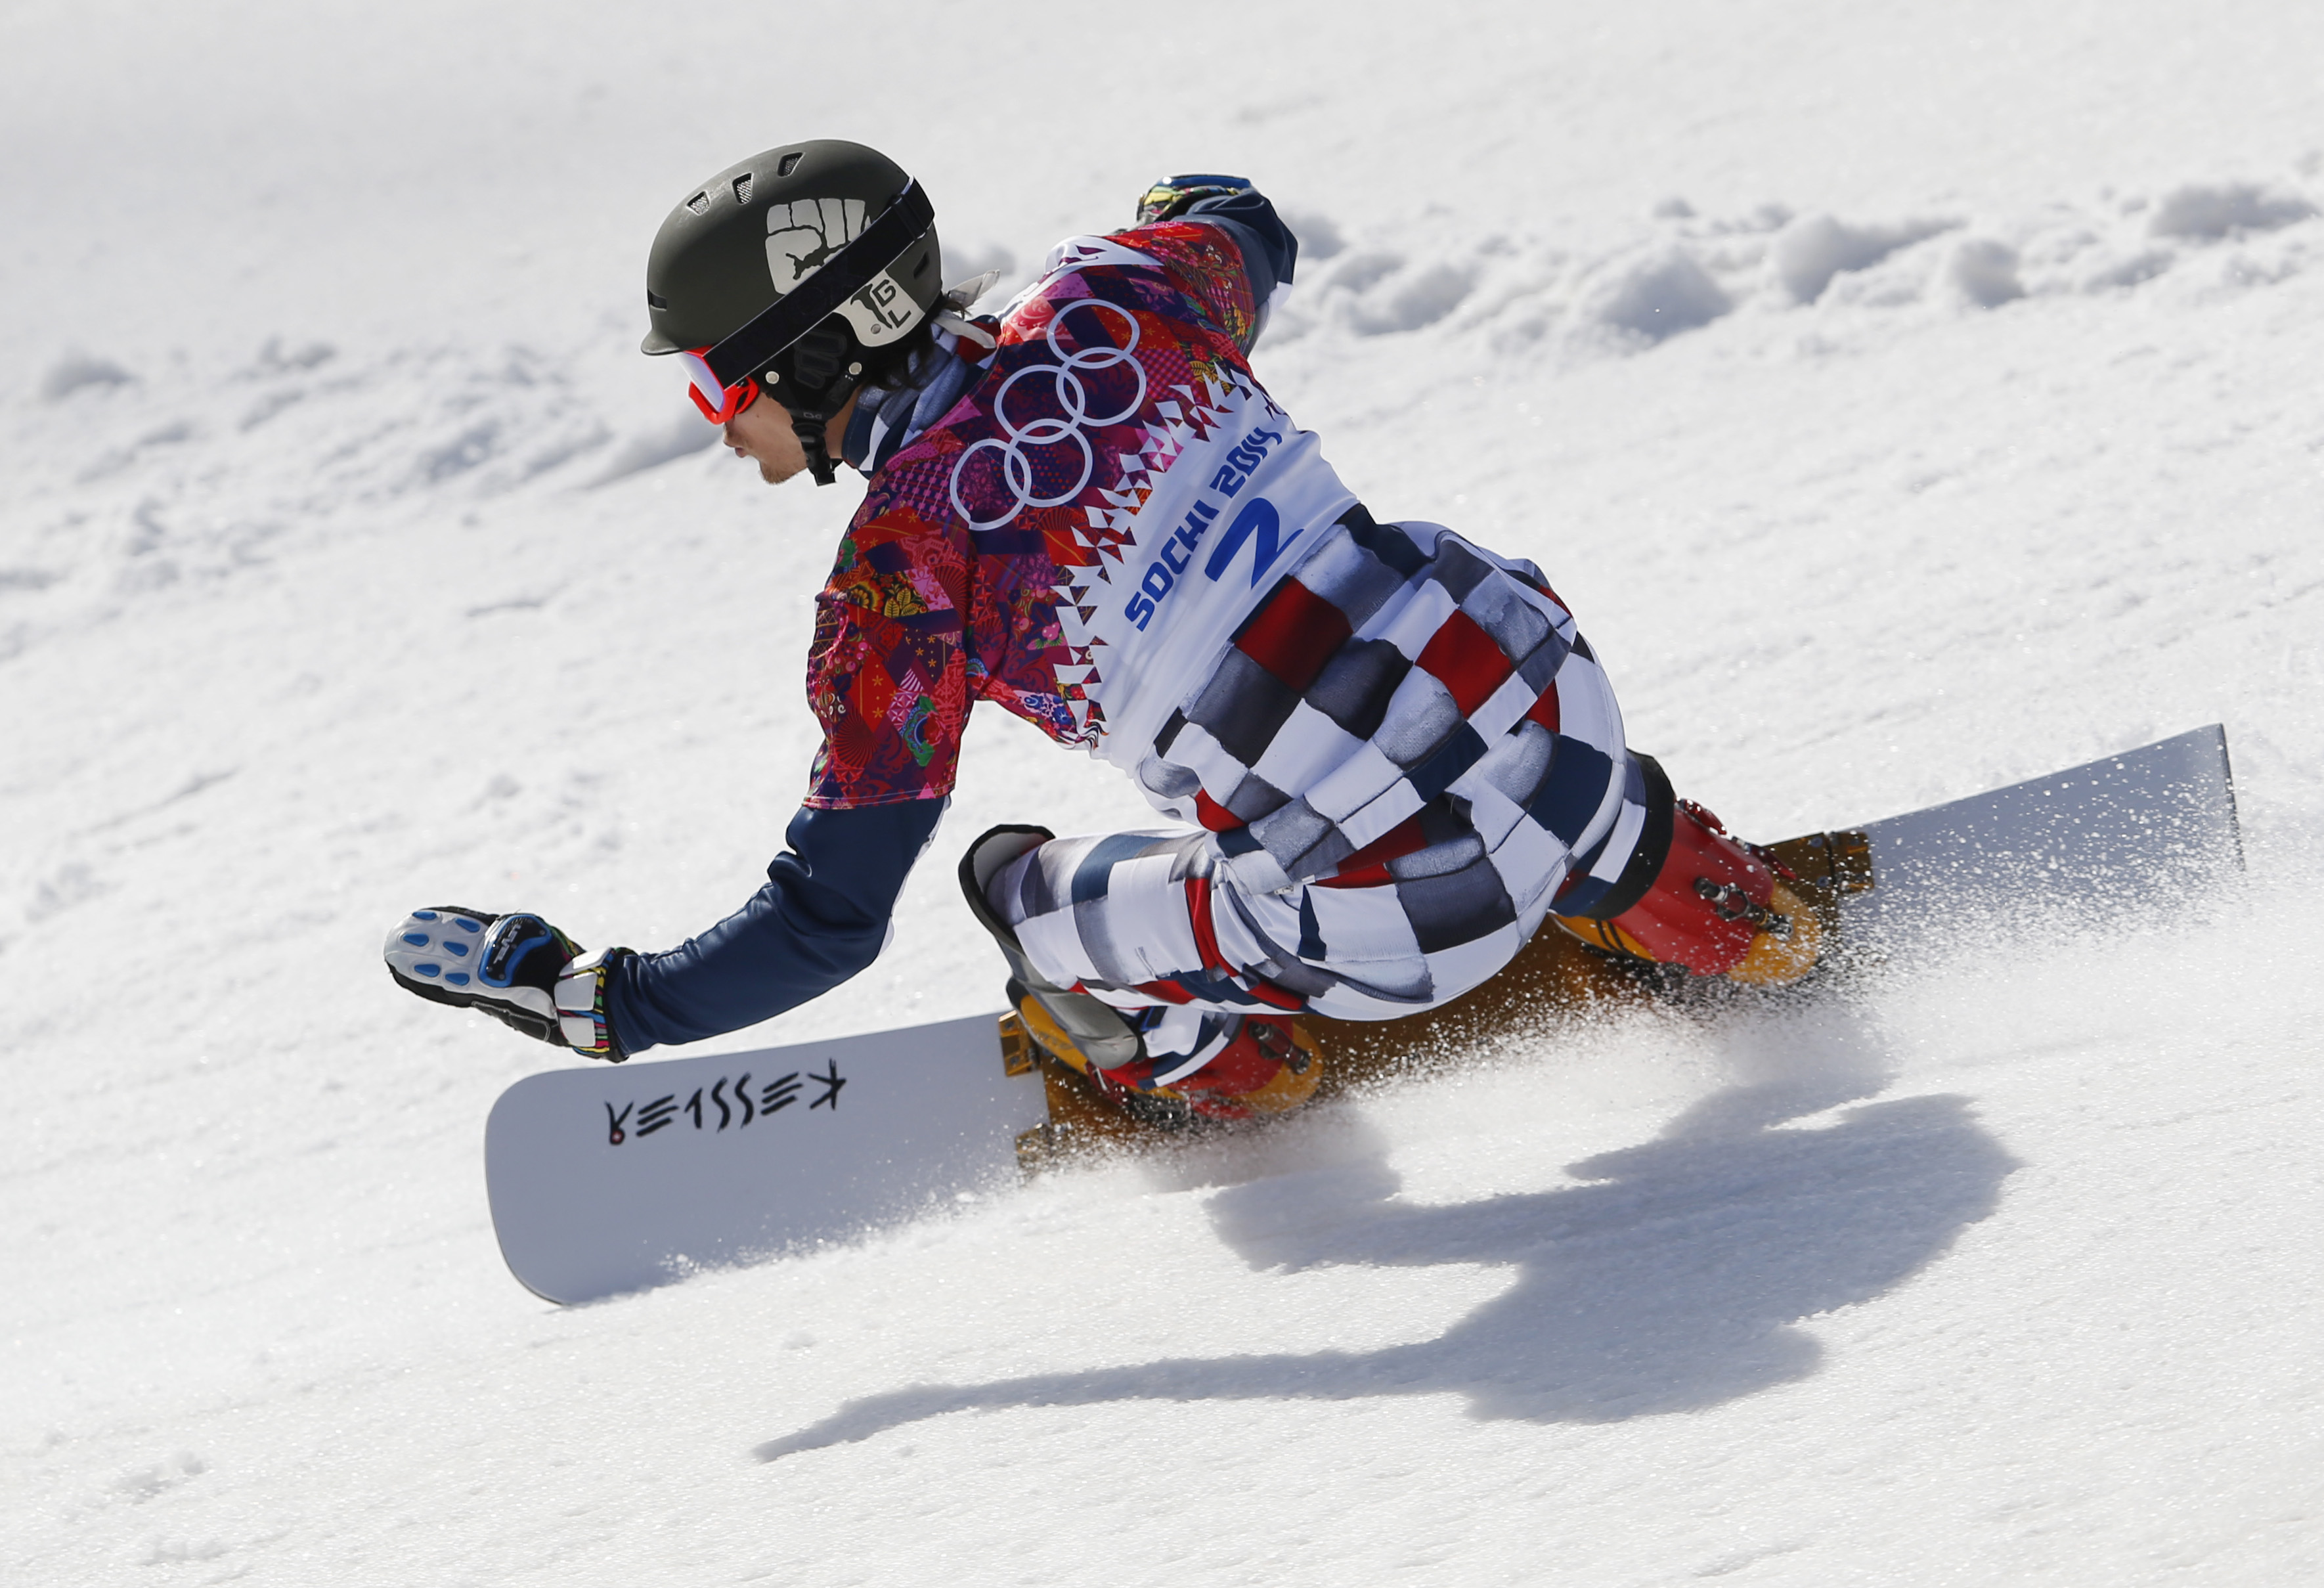 Russia's Vic Wild competes during snowboard parallel slalom qualifying at the Rosa Khutor Extreme Park, at the 2014 Winter Olympics, Saturday, Feb. 22, 2014, in Krasnaya Polyana, Russia. (AP Photo/Sergei Grits)